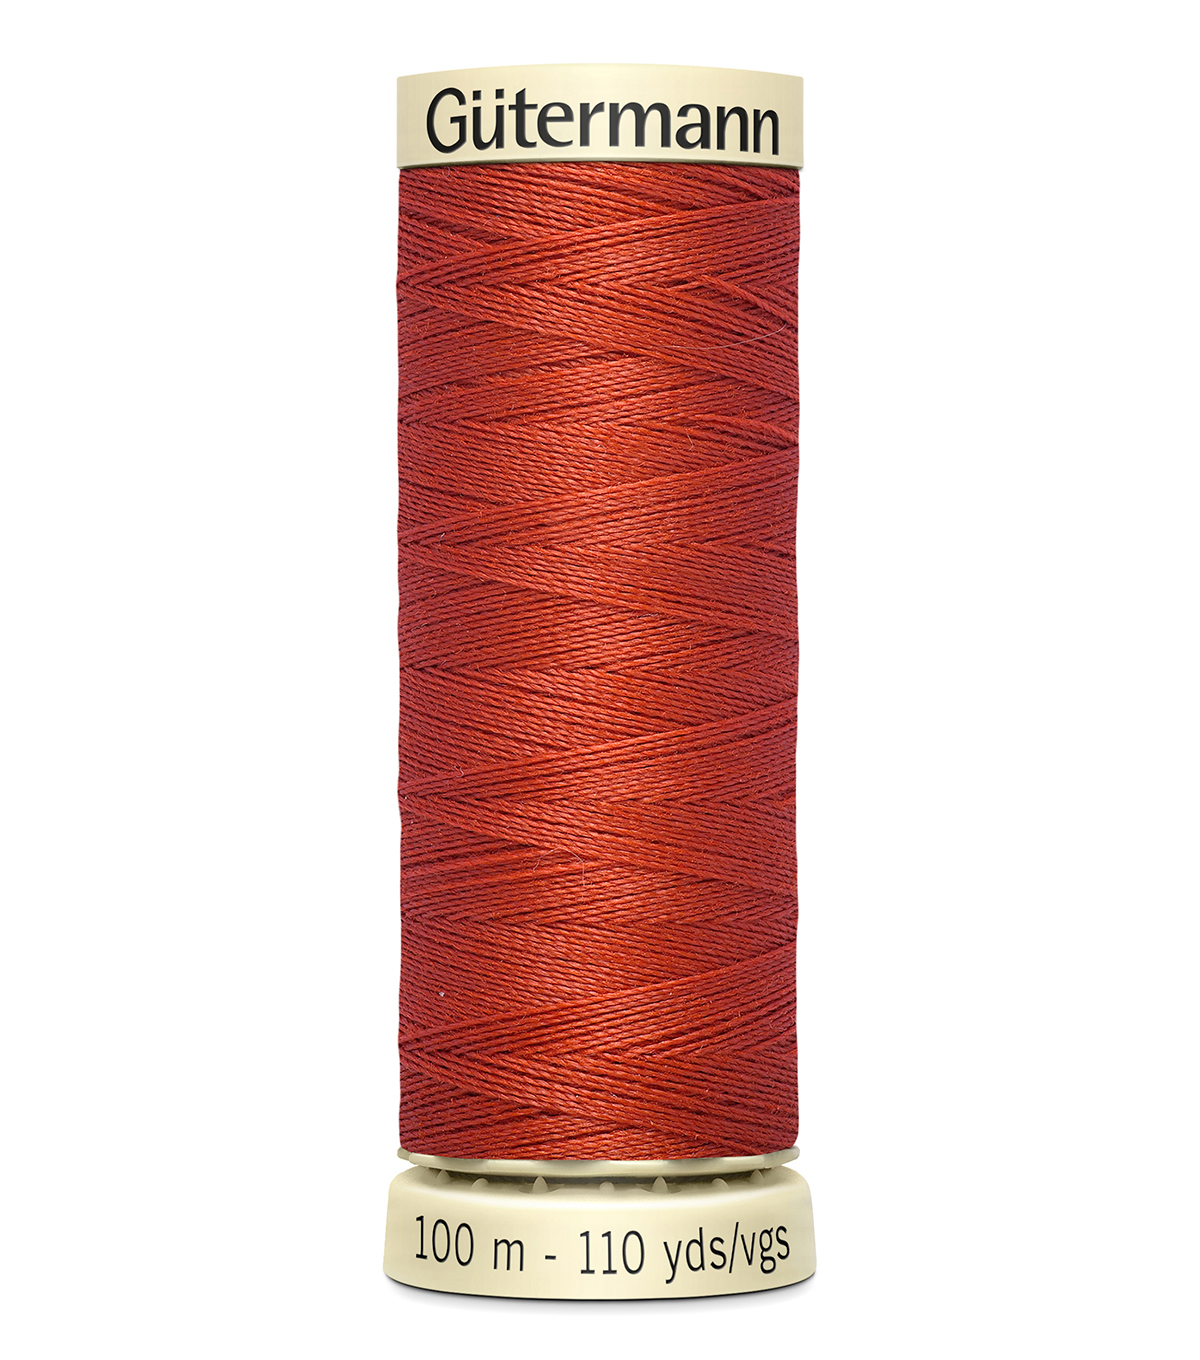 Gutermann Sew All Polyester Thread 110 Yards-Oranges & Yellows , Copper #476